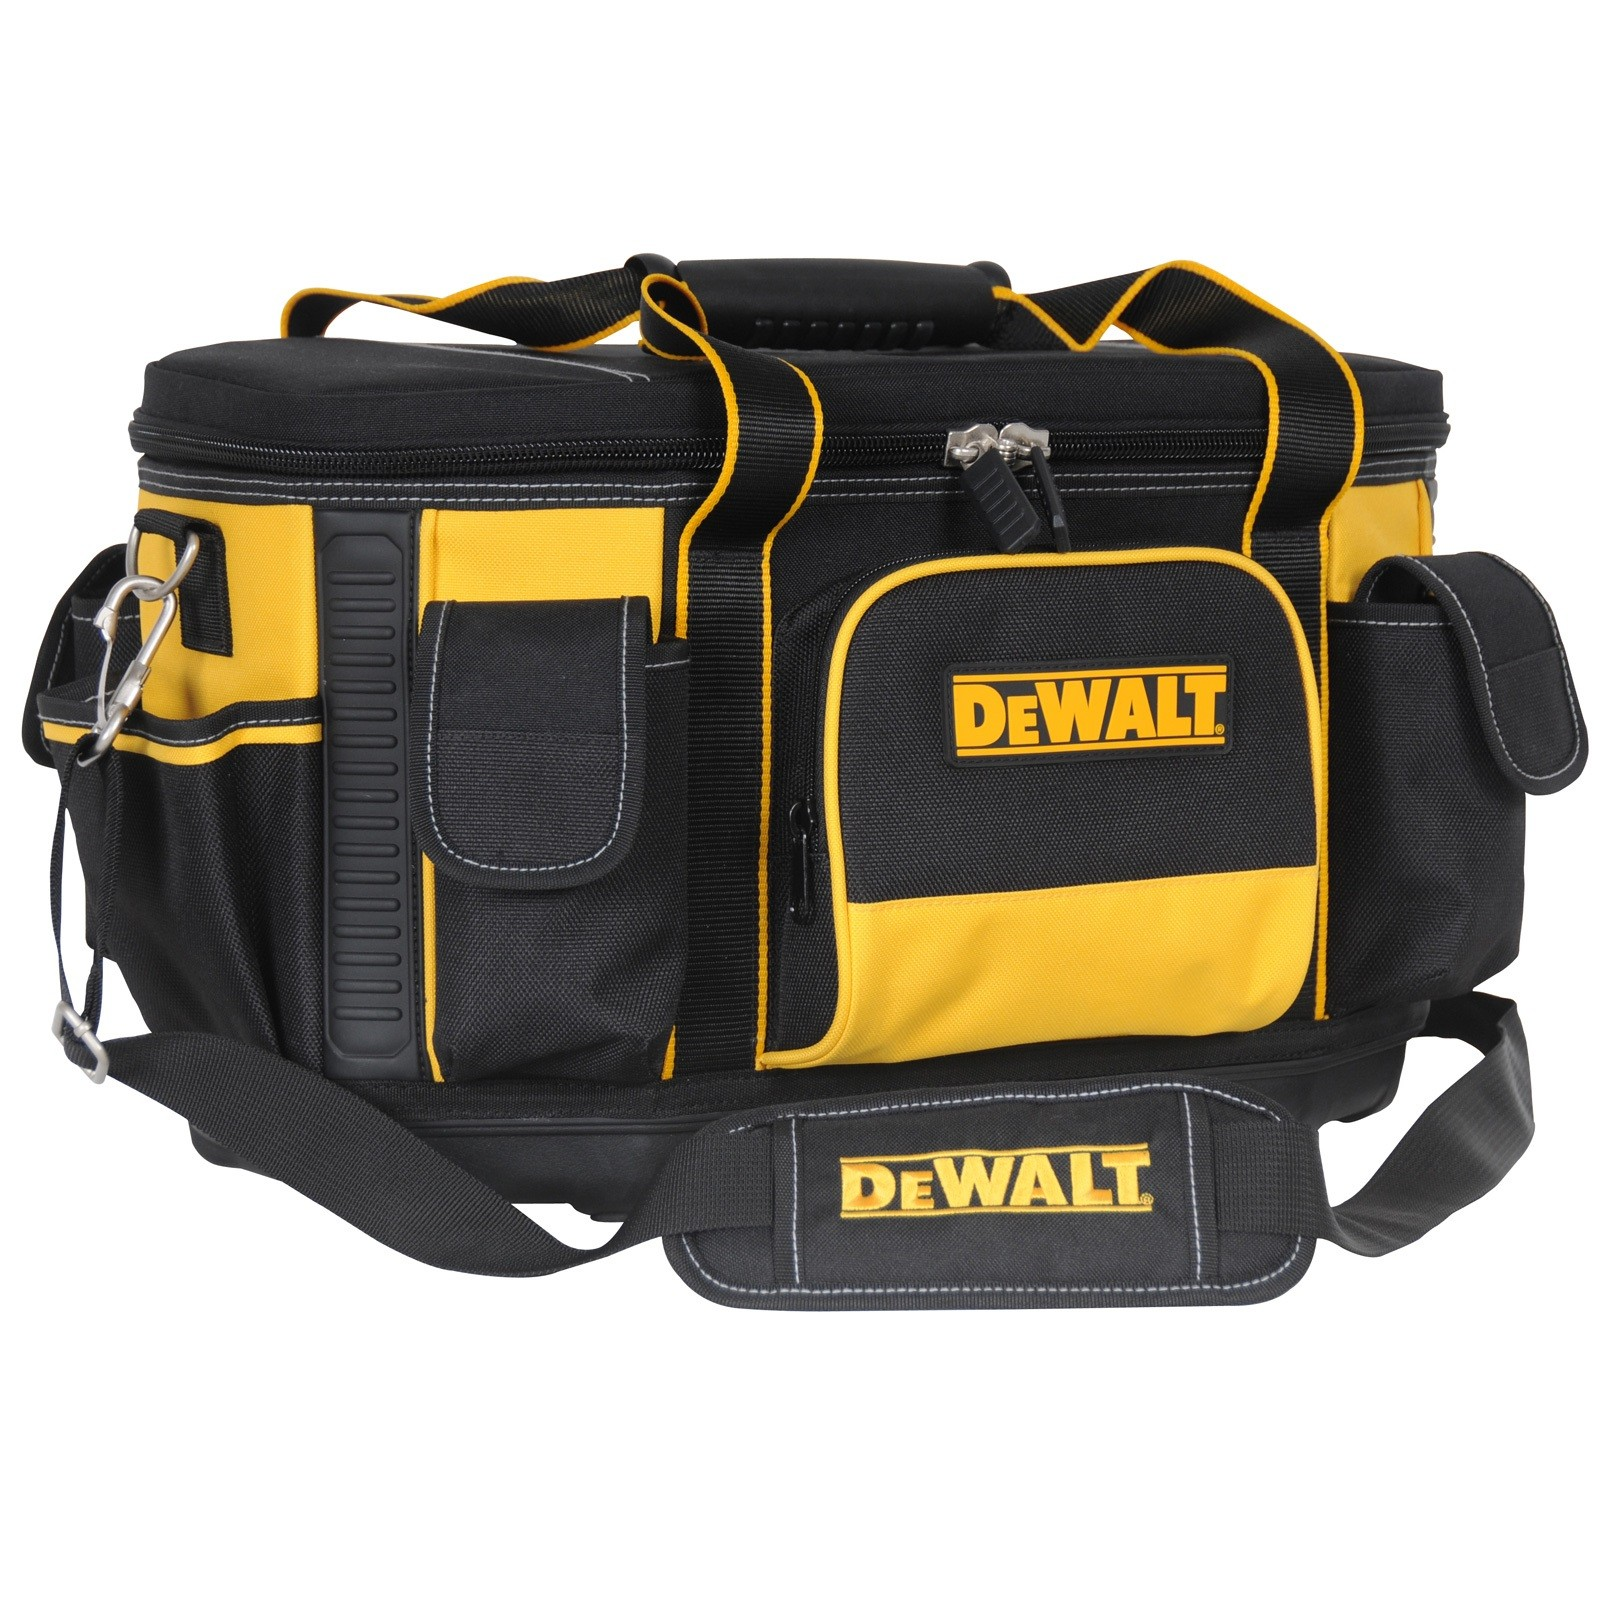 dewalt 1 79 211 top tool bag 20 powertool world